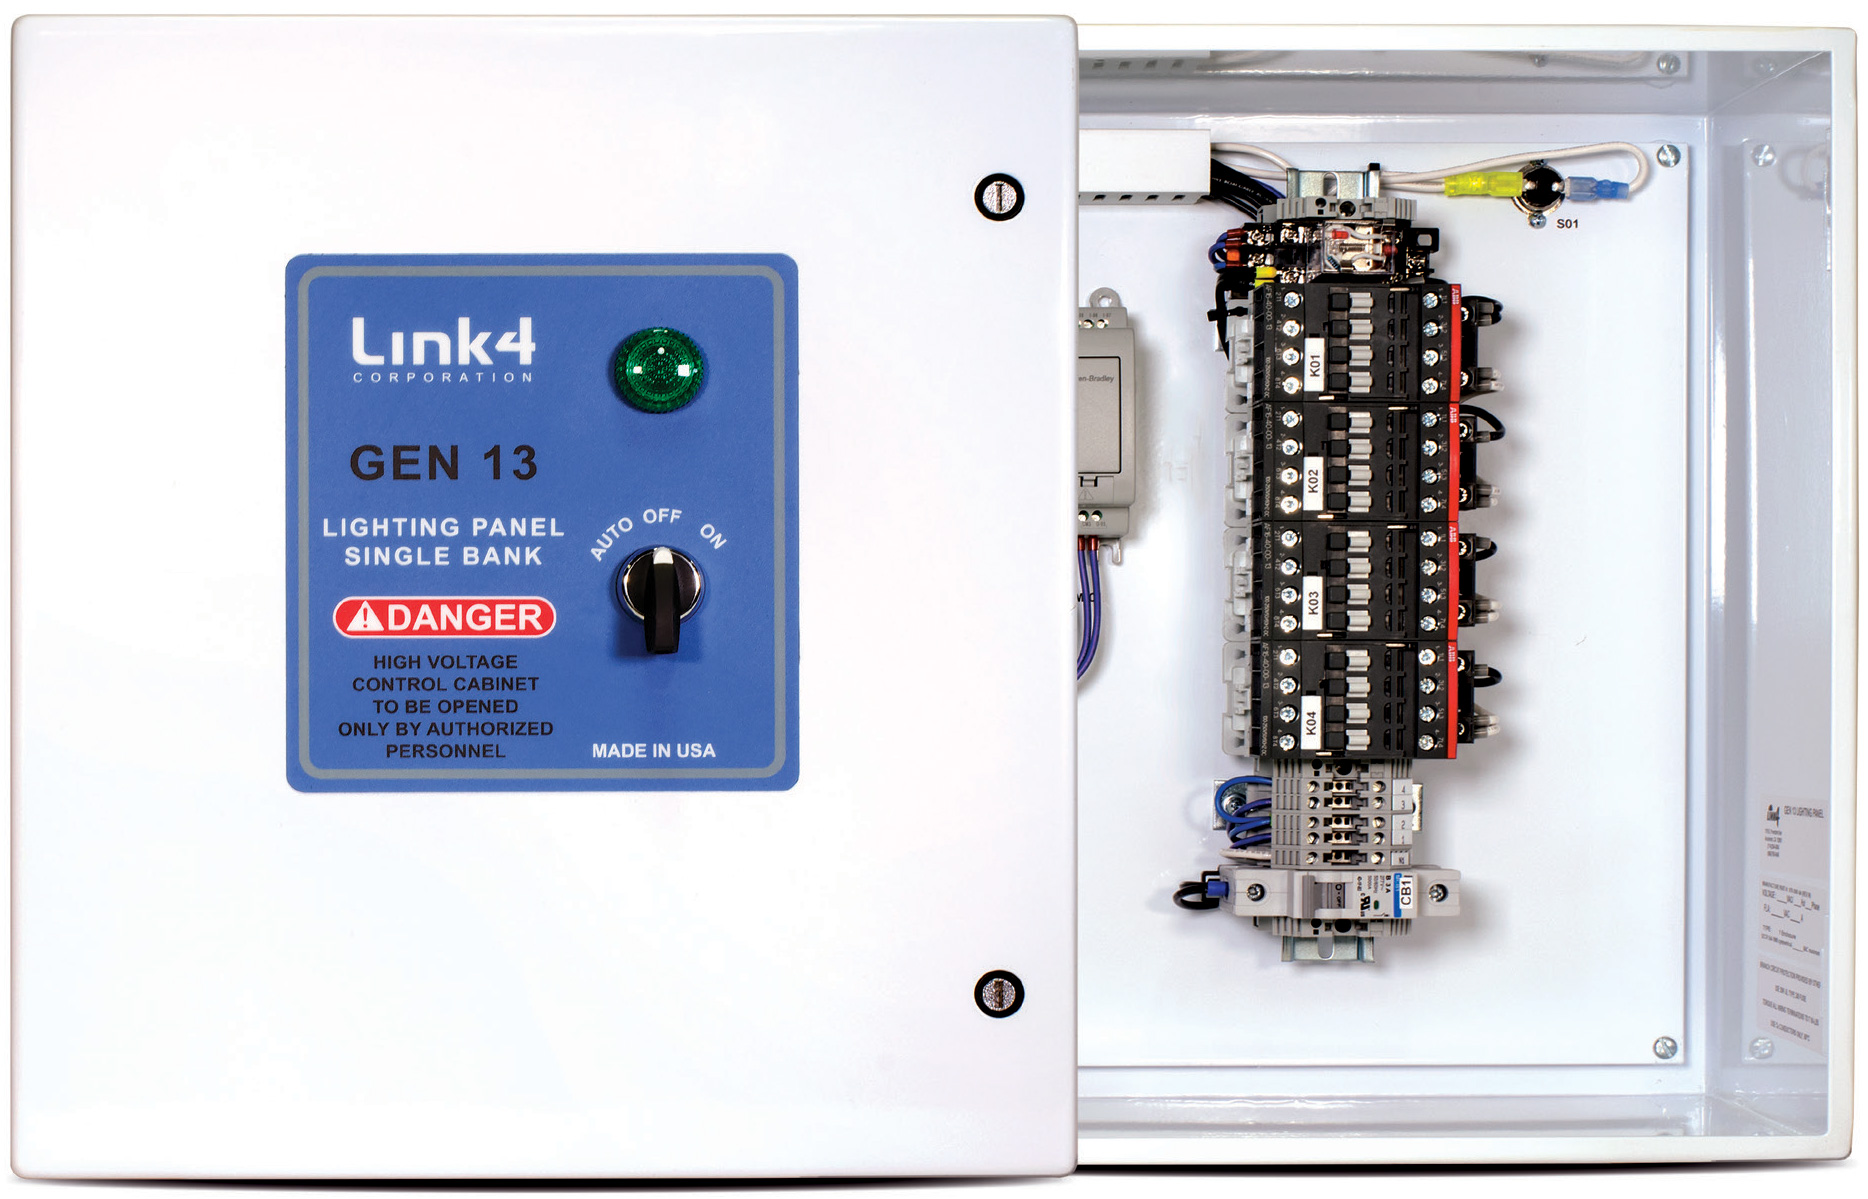 Link4 Gen 13 and 14 Lighting Panel